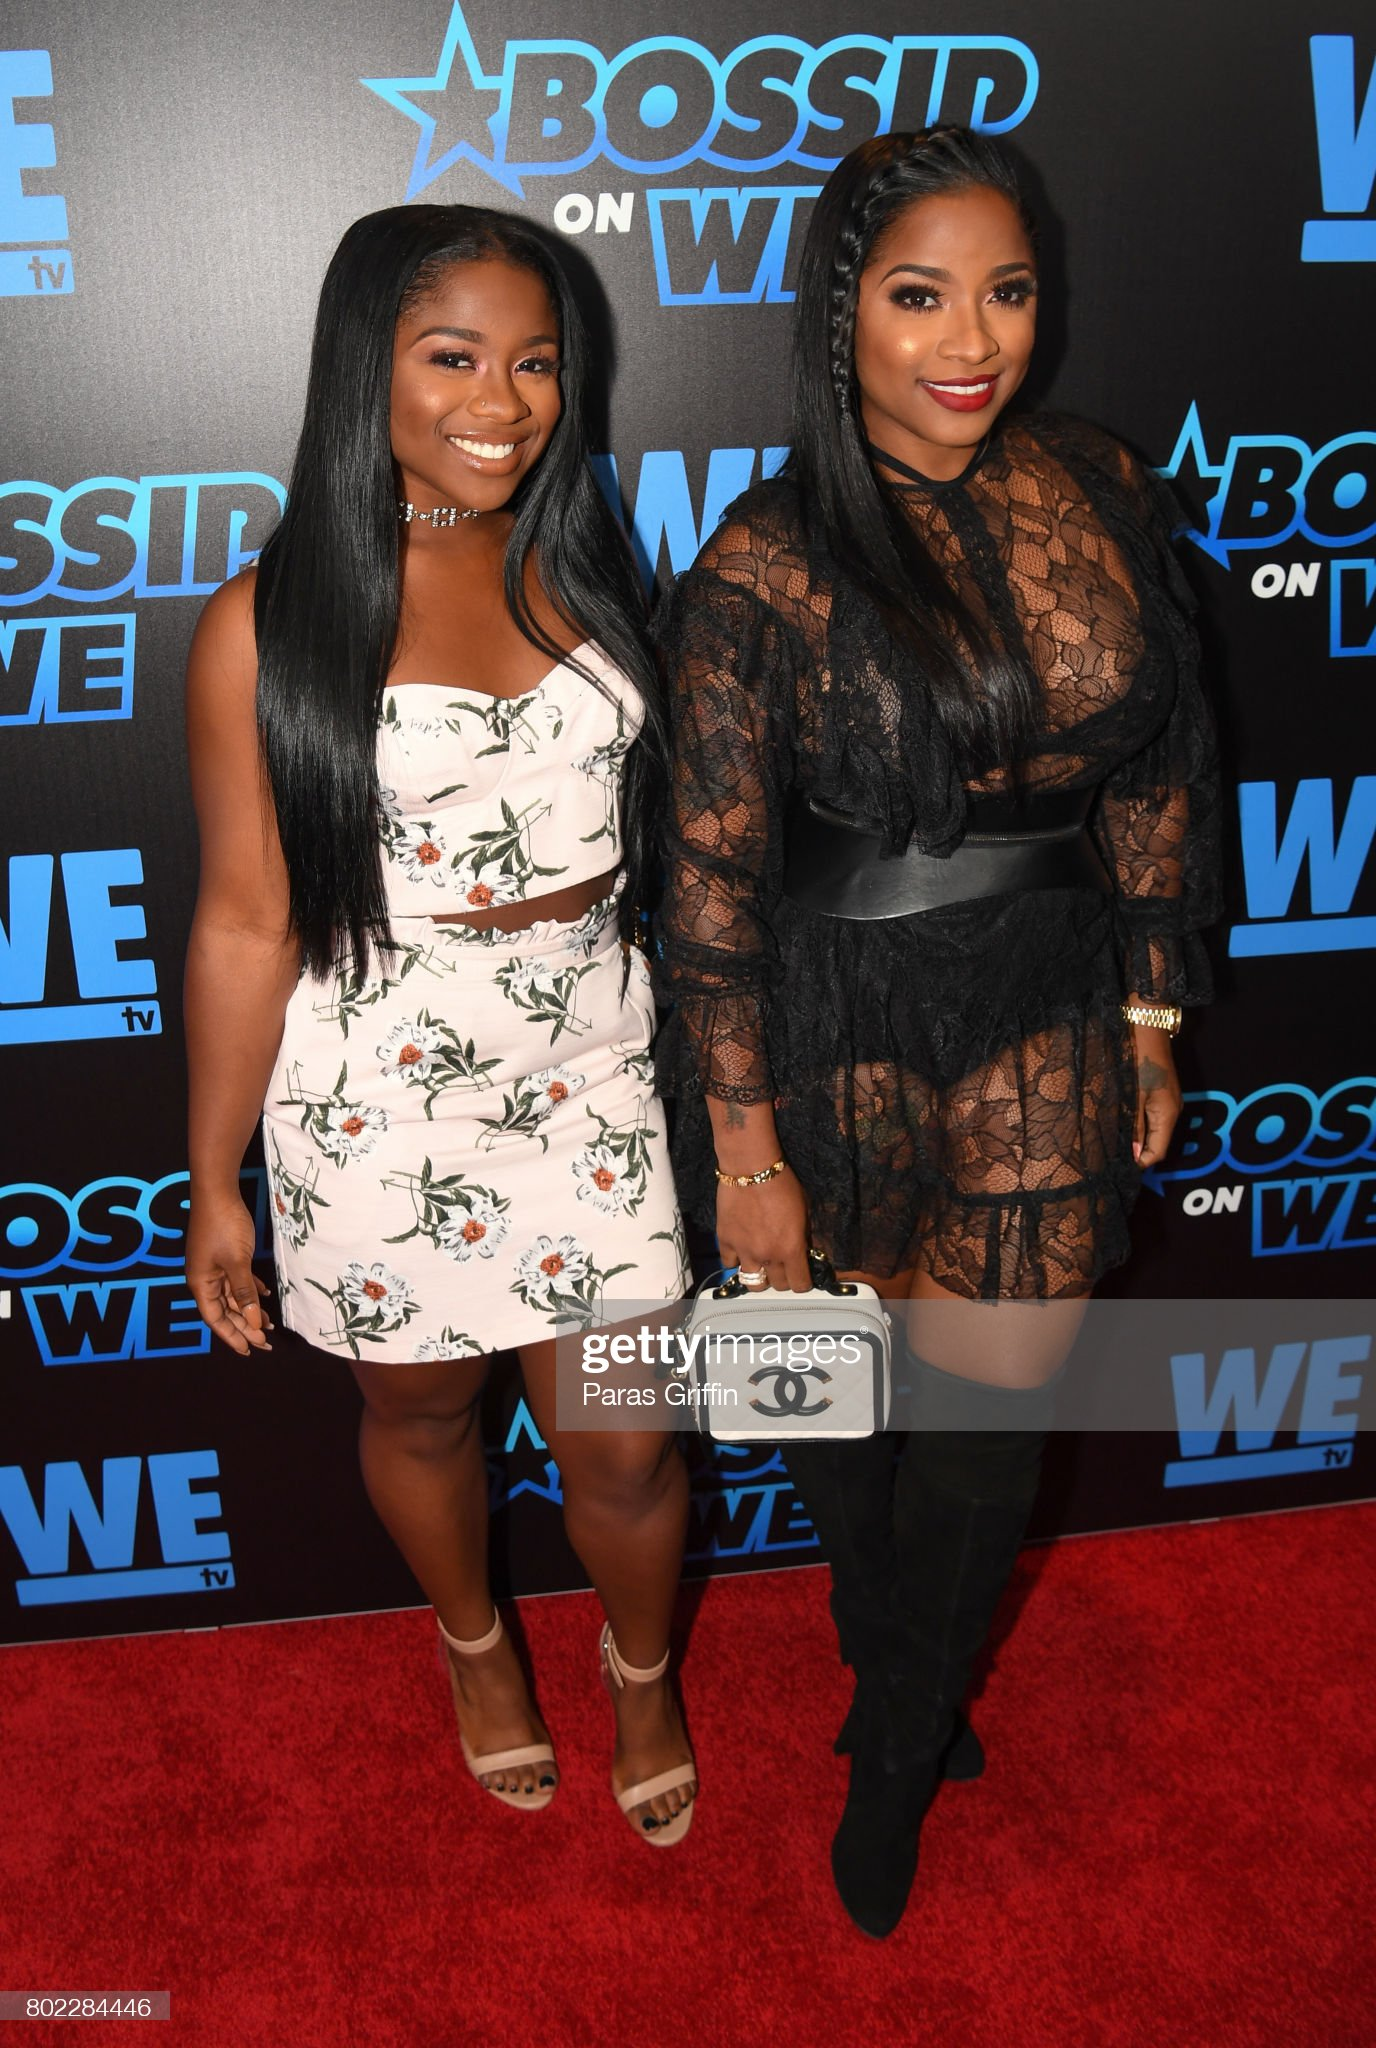 ¿Cuánto mide Toya Wright (Antonia)? - Real height Personality-reginae-carter-with-her-mother-toya-wright-at-bossip-on-picture-id802284446?s=2048x2048